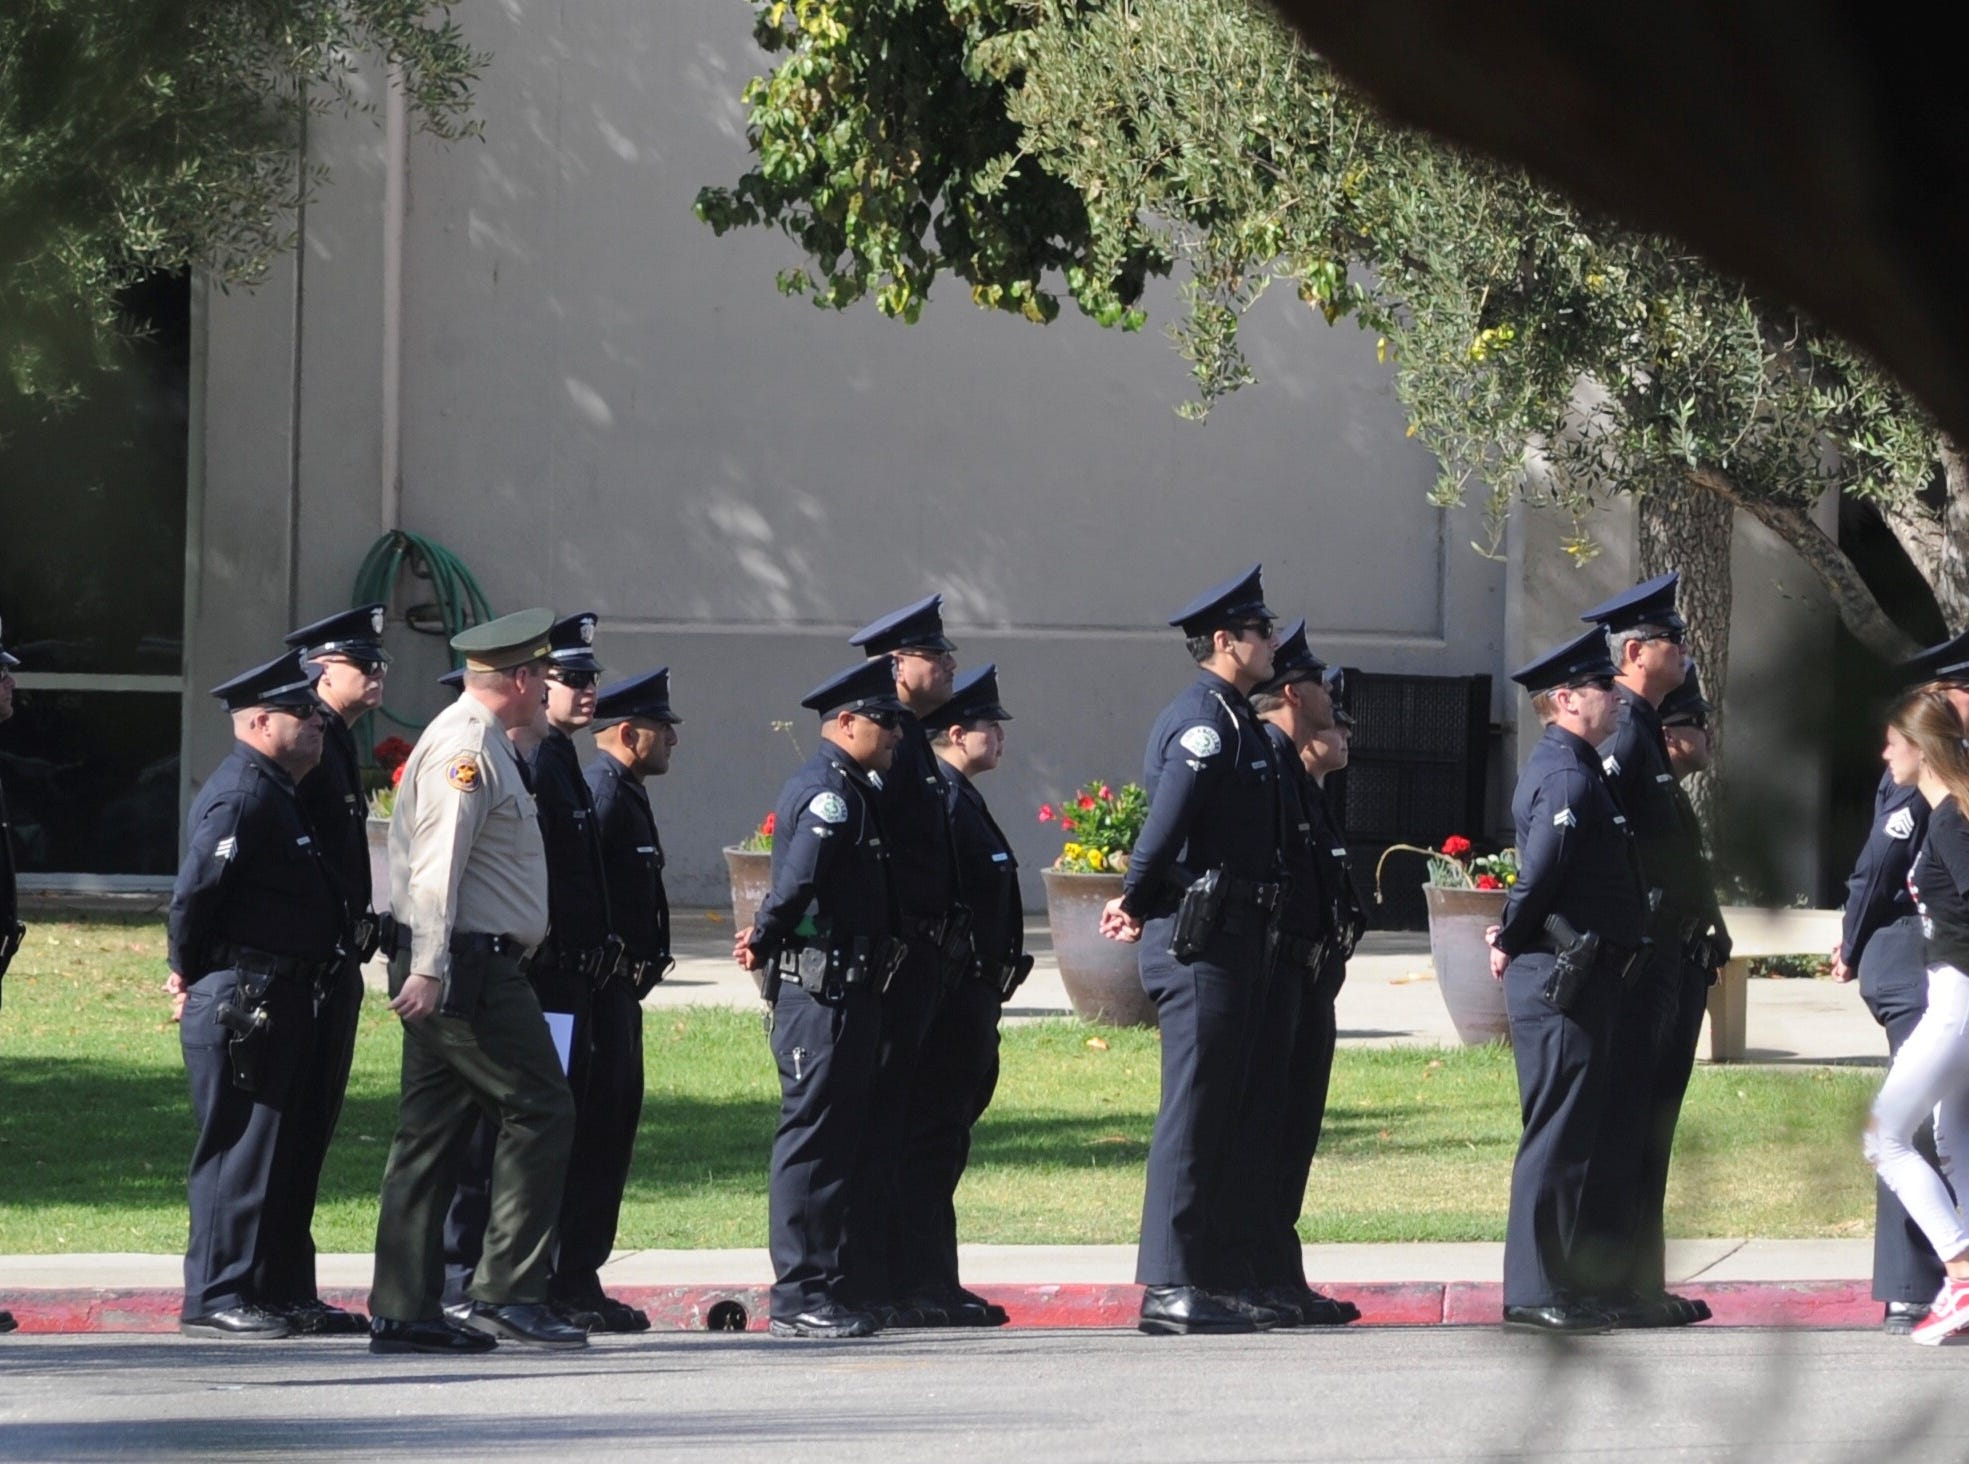 Officers from law enforcement agencies across the region line up outside Calvary Community Church in Westlake Village for the funeral services of Ventura County Sheriff's Office Sgt. Ron Helus.